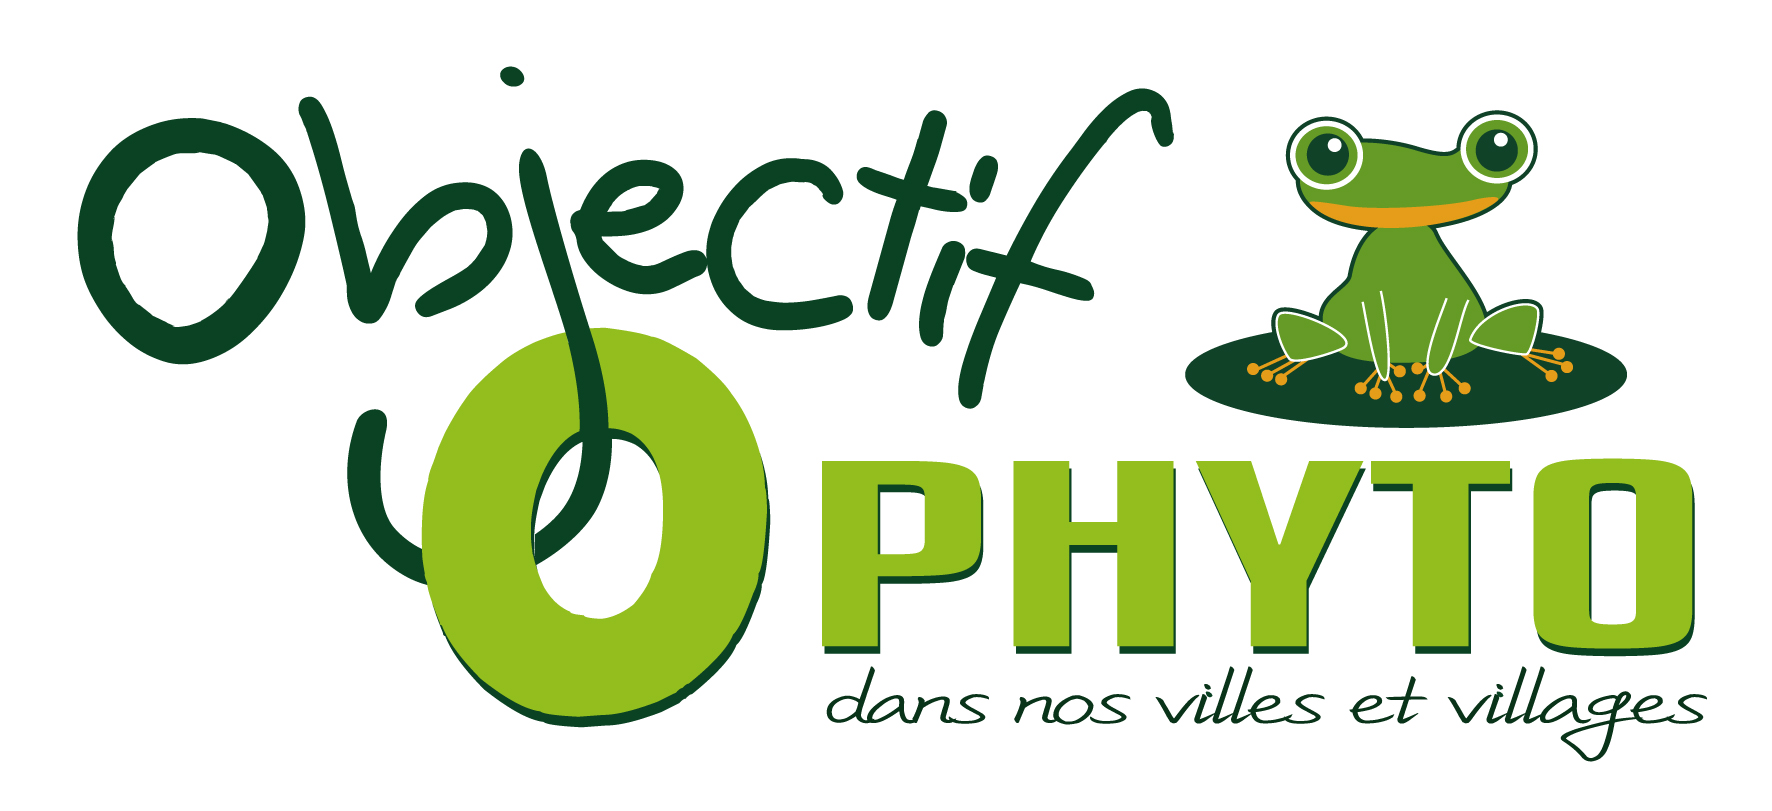 Objectif 0 phyto